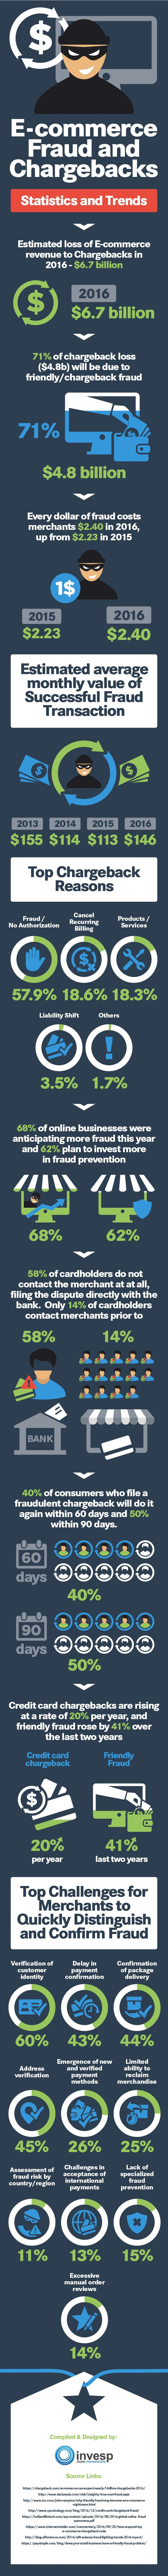 E-commerce Fraud And Chargebacks: Statistics And Trends #Infographic